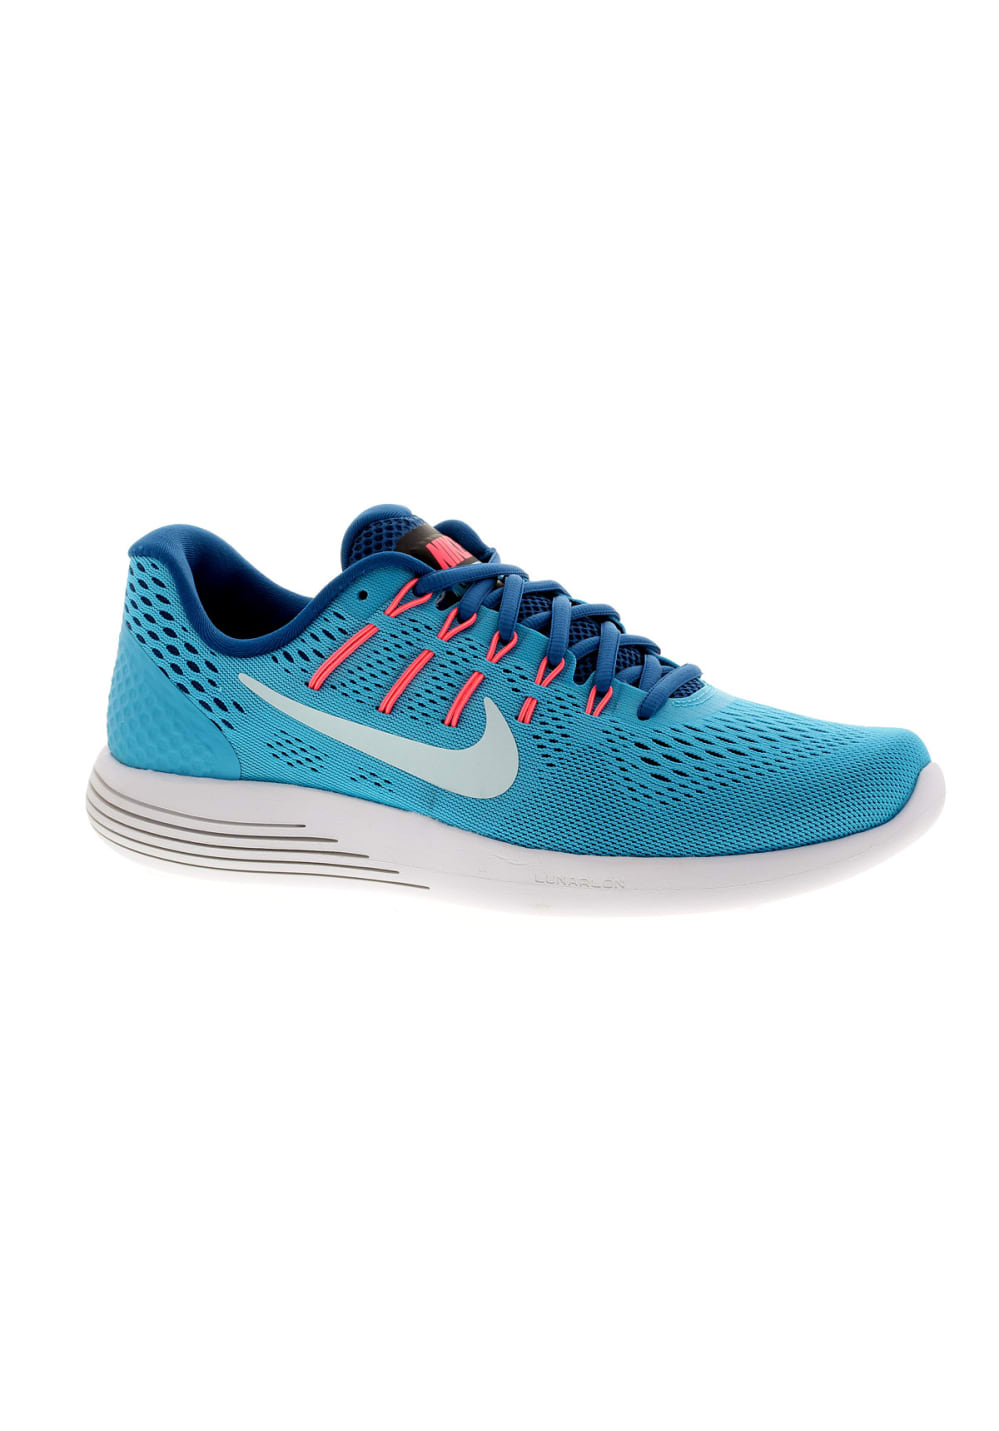 wholesale dealer c7adc 63932 Nike Lunarglide 8 - Running shoes for Women - Blue